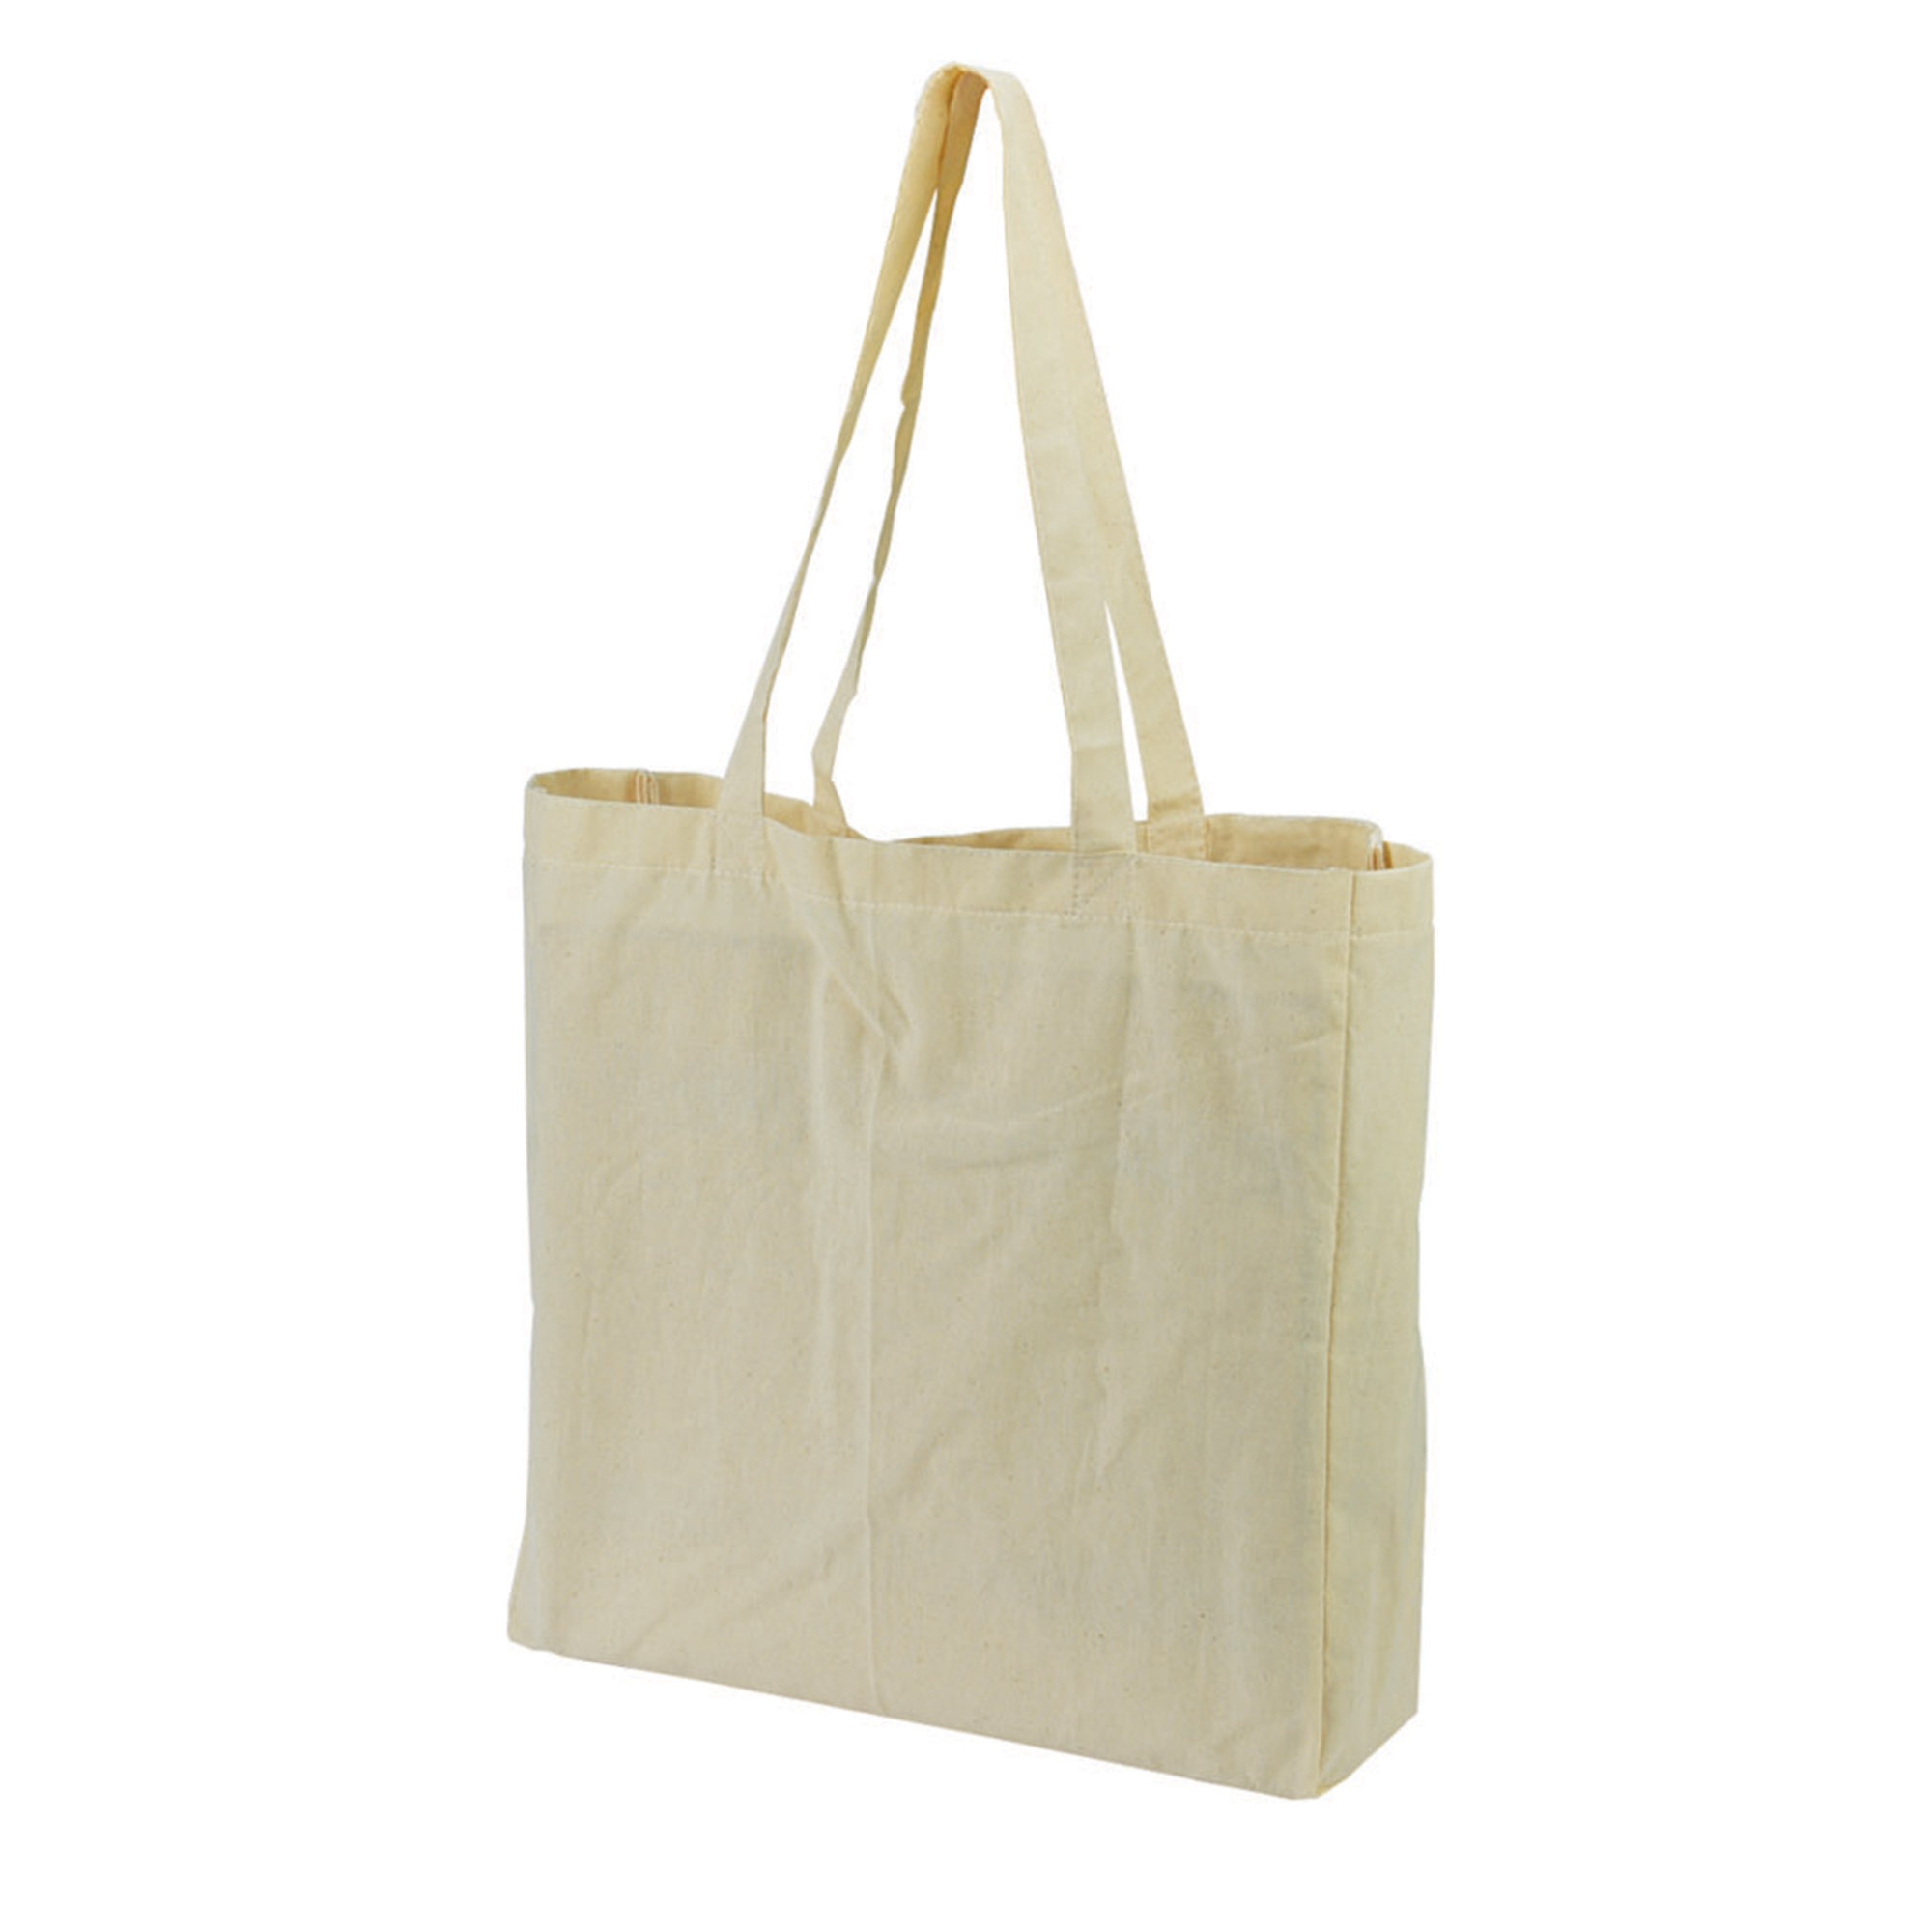 CALICO BAG WITH GUSSET - 1 Colour Print, From $1.99